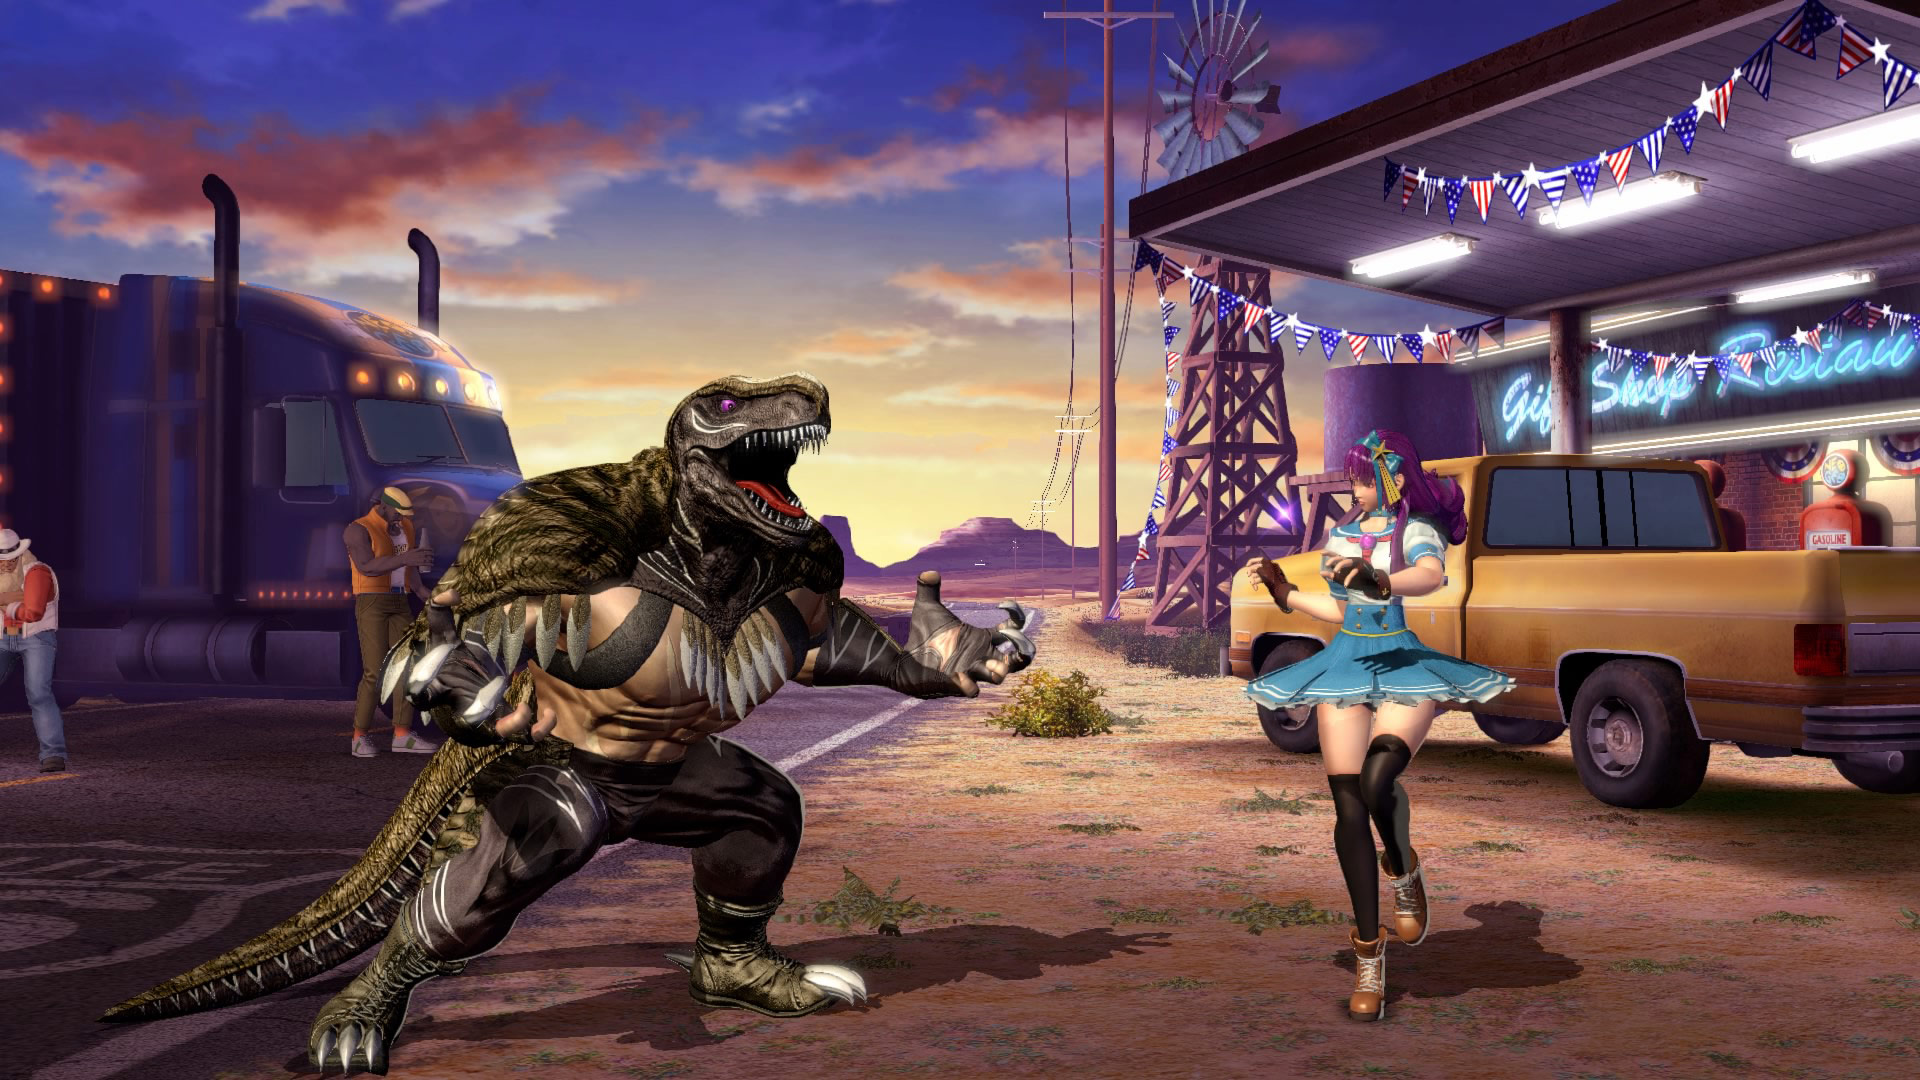 King of Fighters 14 1.10 graphics update 35 out of 60 image gallery